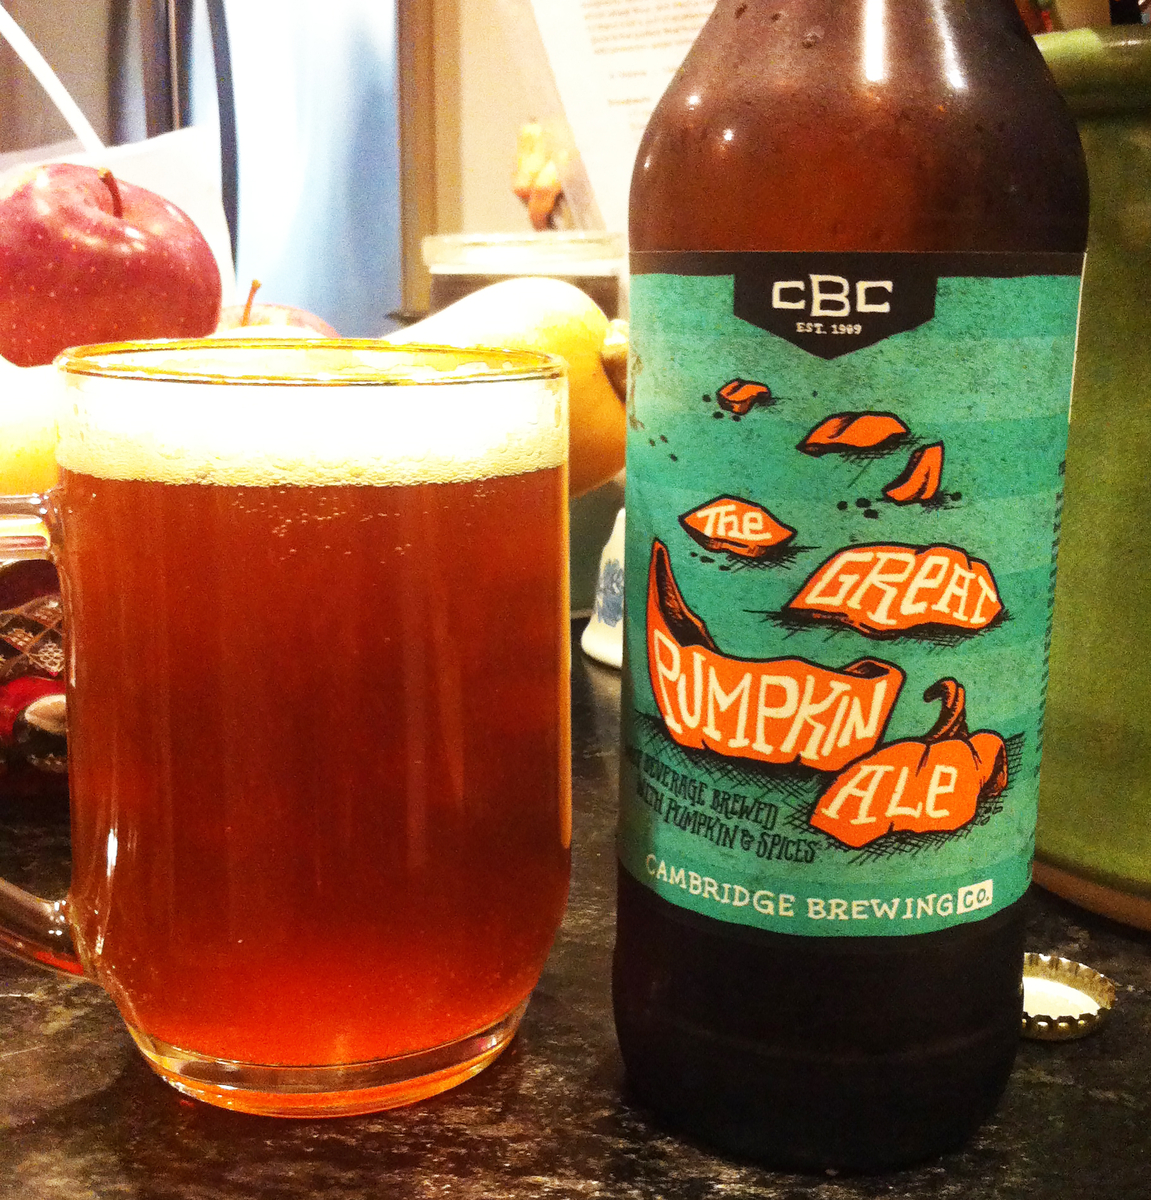 cambridge brewing co. the great pumpkin ale bottle and glass